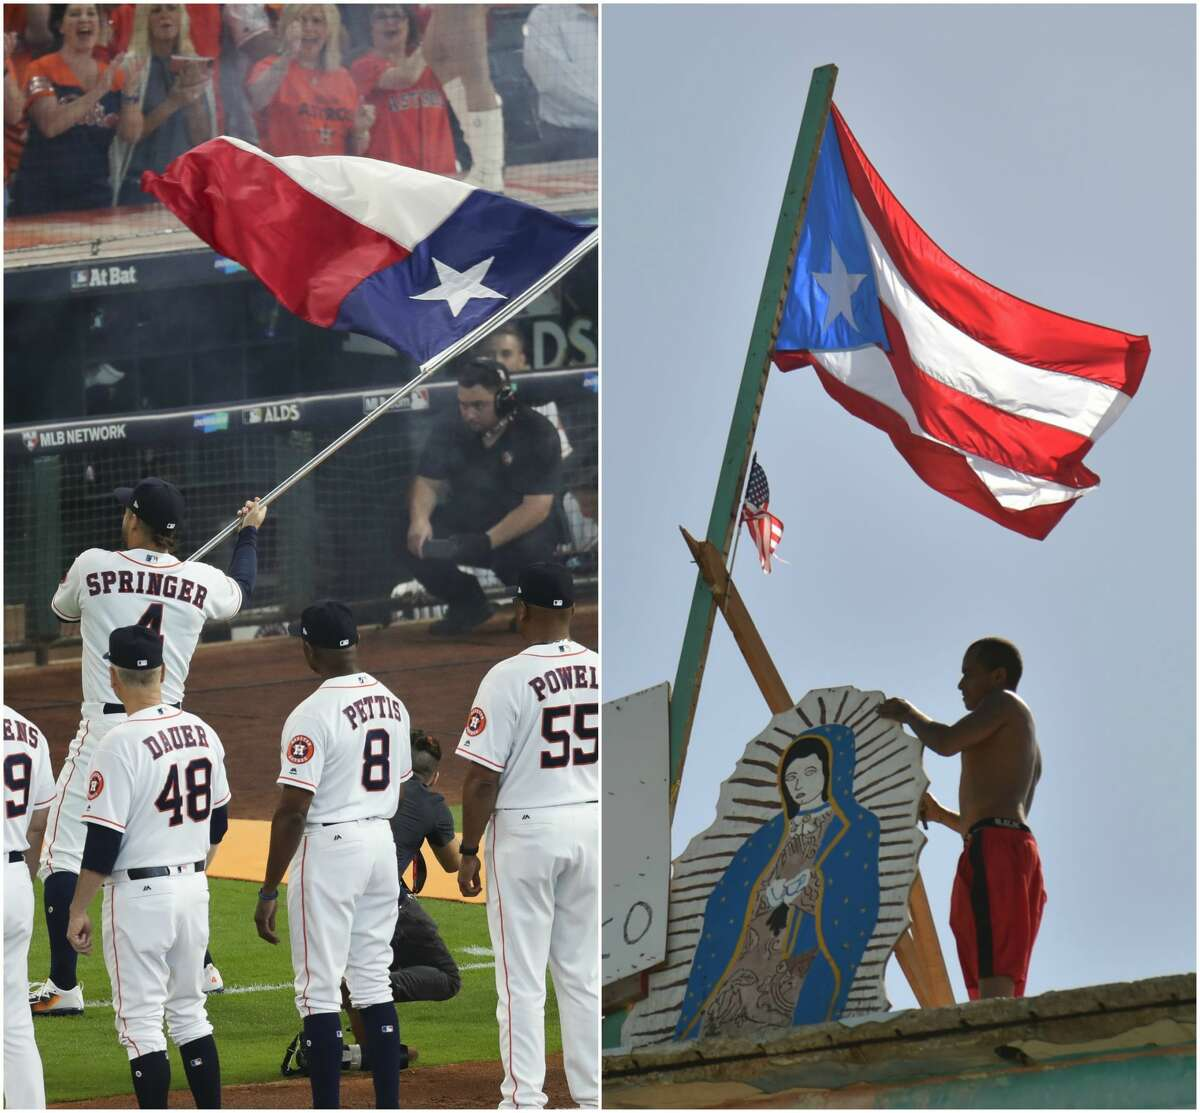 A Boston sportswriter confused the Puerto Rico flag (right) with the Texas flag (left). We know that our readers didn't need those identifiers, but we wanted to be helpful for our non-Texan readers.